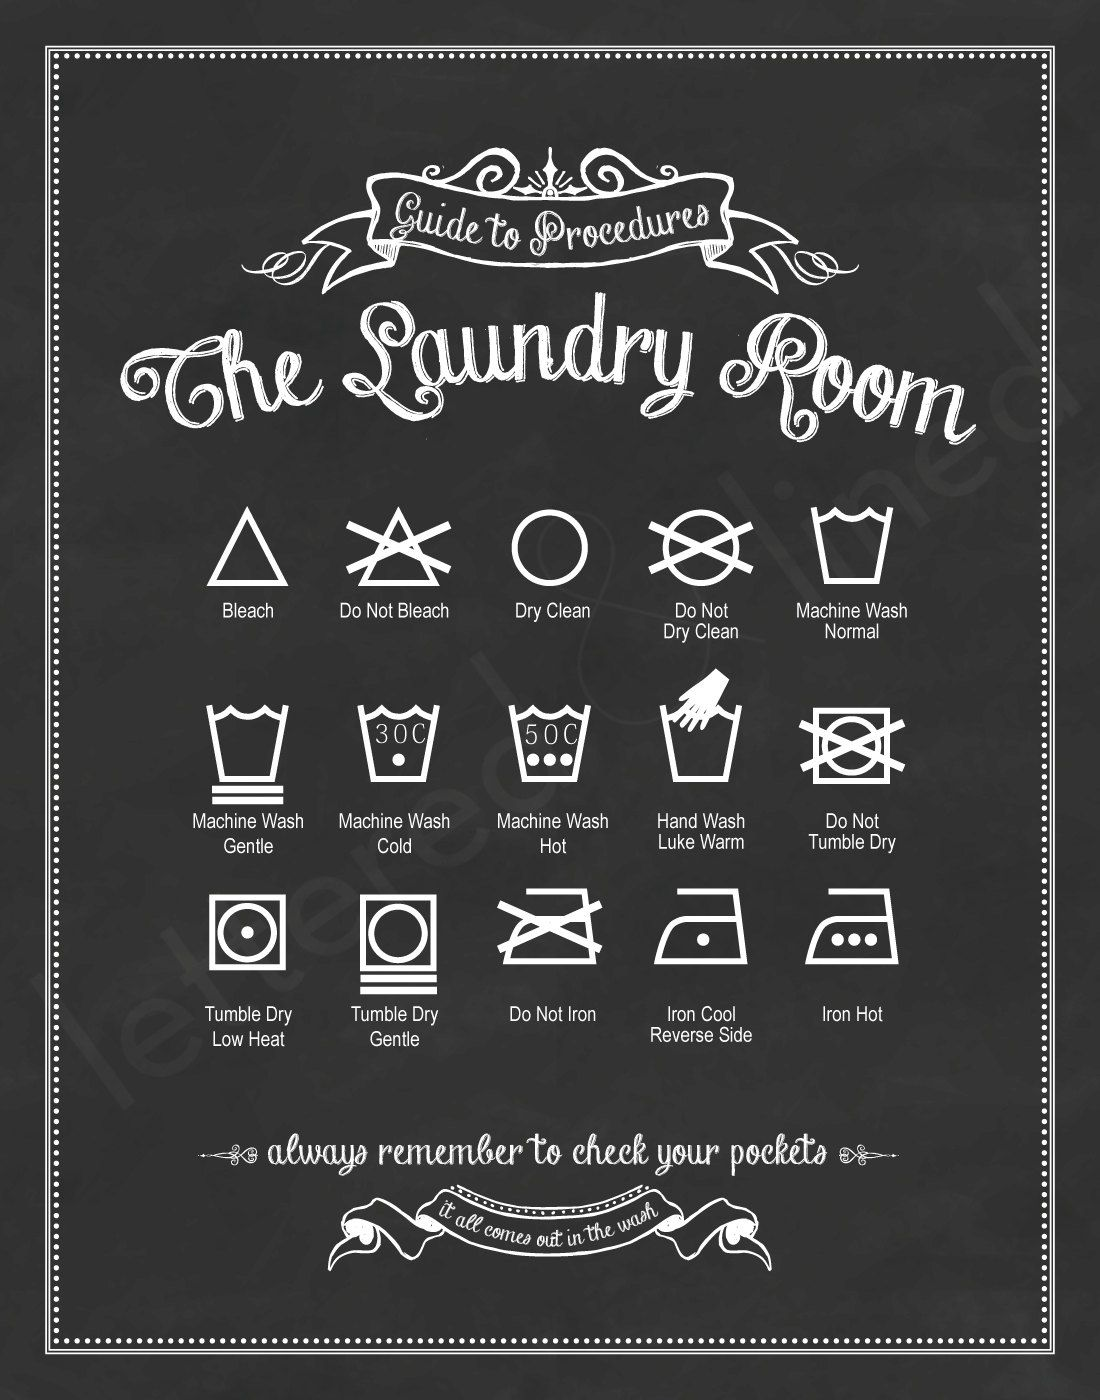 Original Guide To Procedures The Laundry Room Print 56 Etsy Laundry Signs Laundry Room Laundry Mud Room